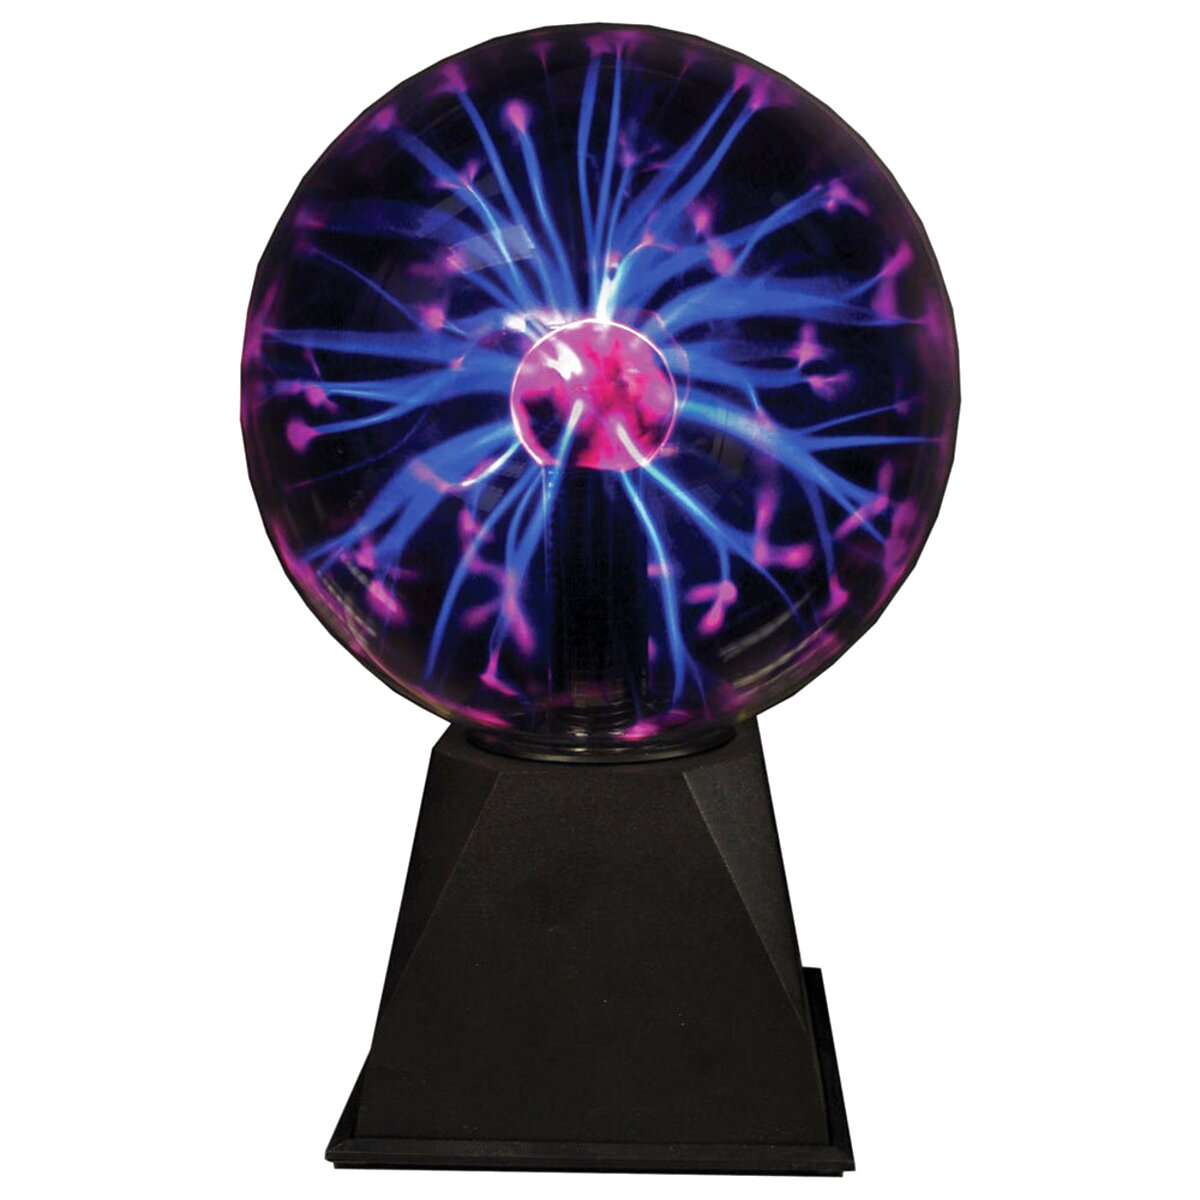 plasma ball for sale